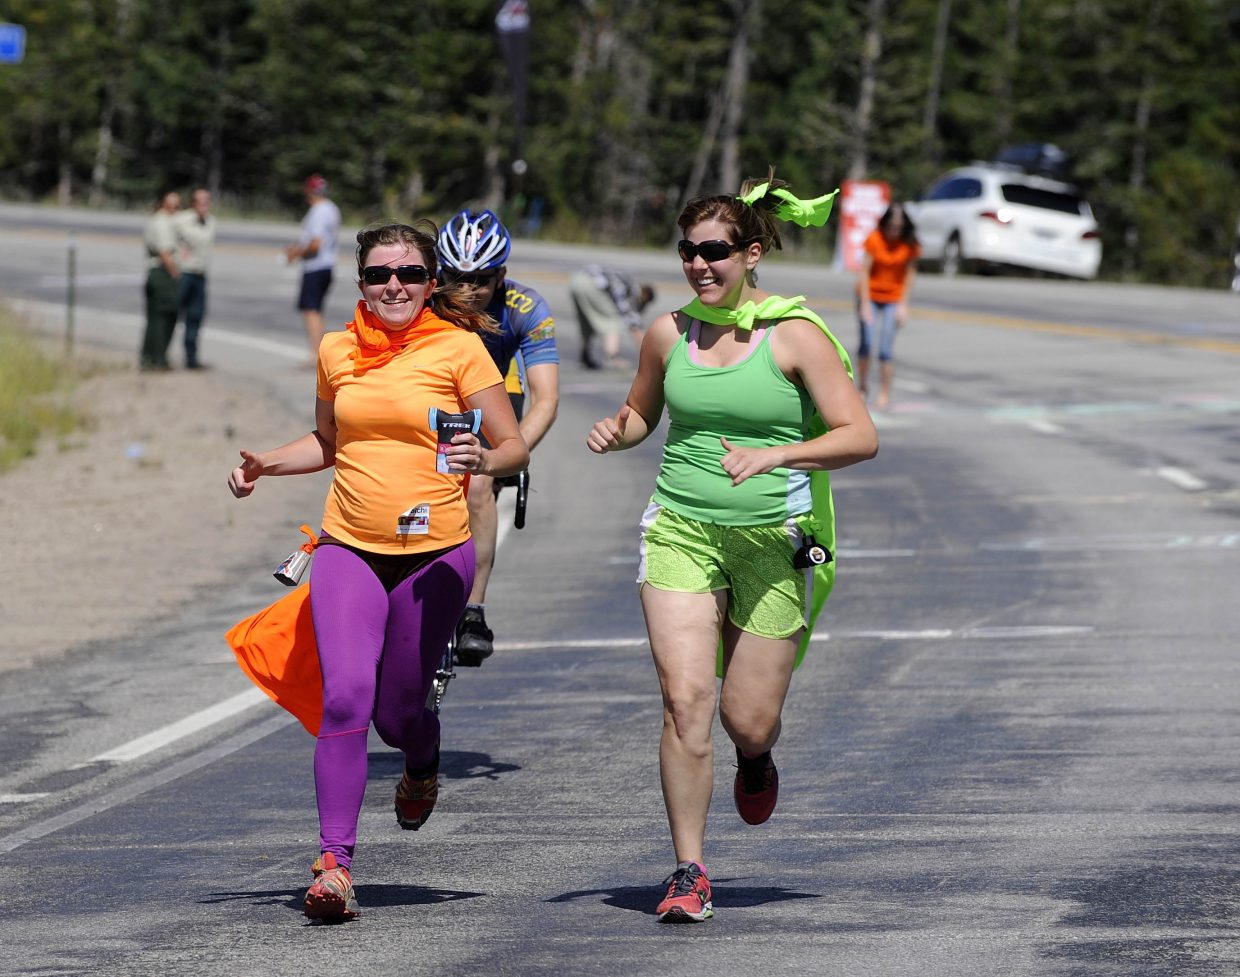 Maddy Marsh, left, of Vail, and Kara Shell, of Ohio, run with cyclists at the east summit of Rabbit Ears Pass on Wednesday during the USA Pro Challenge.